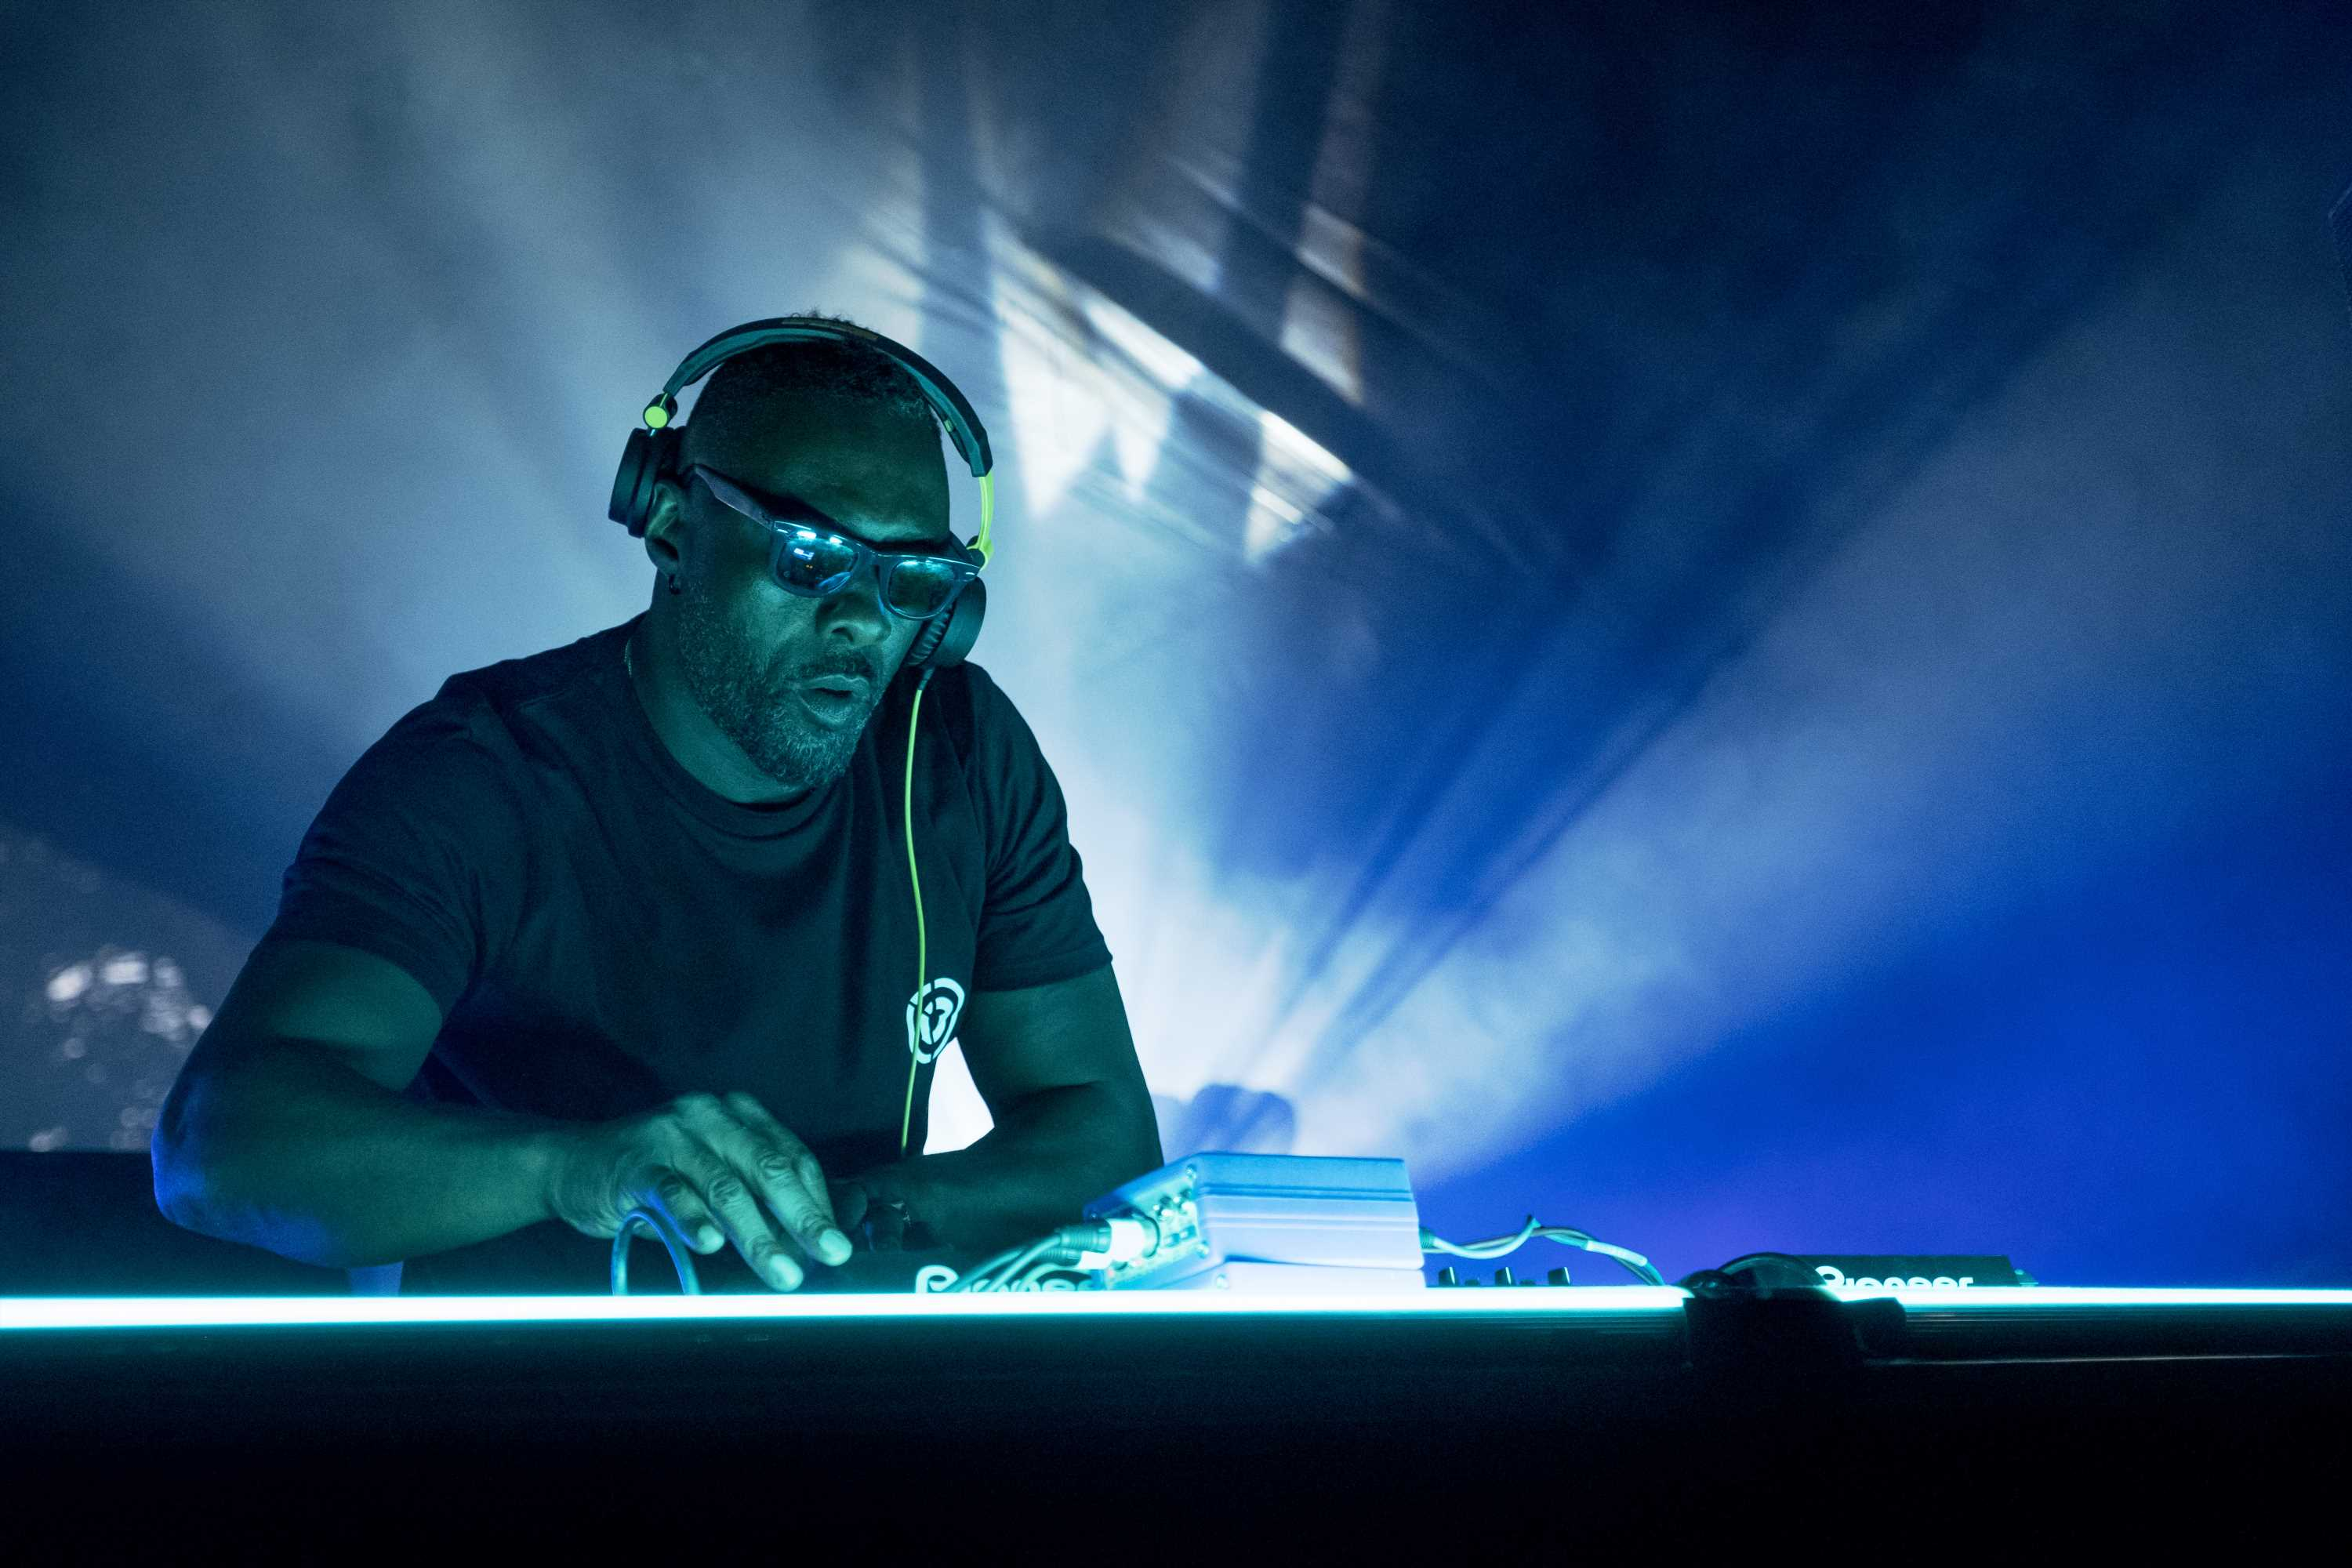 Idris Elba Loves Being a DJ So Much, He Keeps Making TV Shows and Movies About It